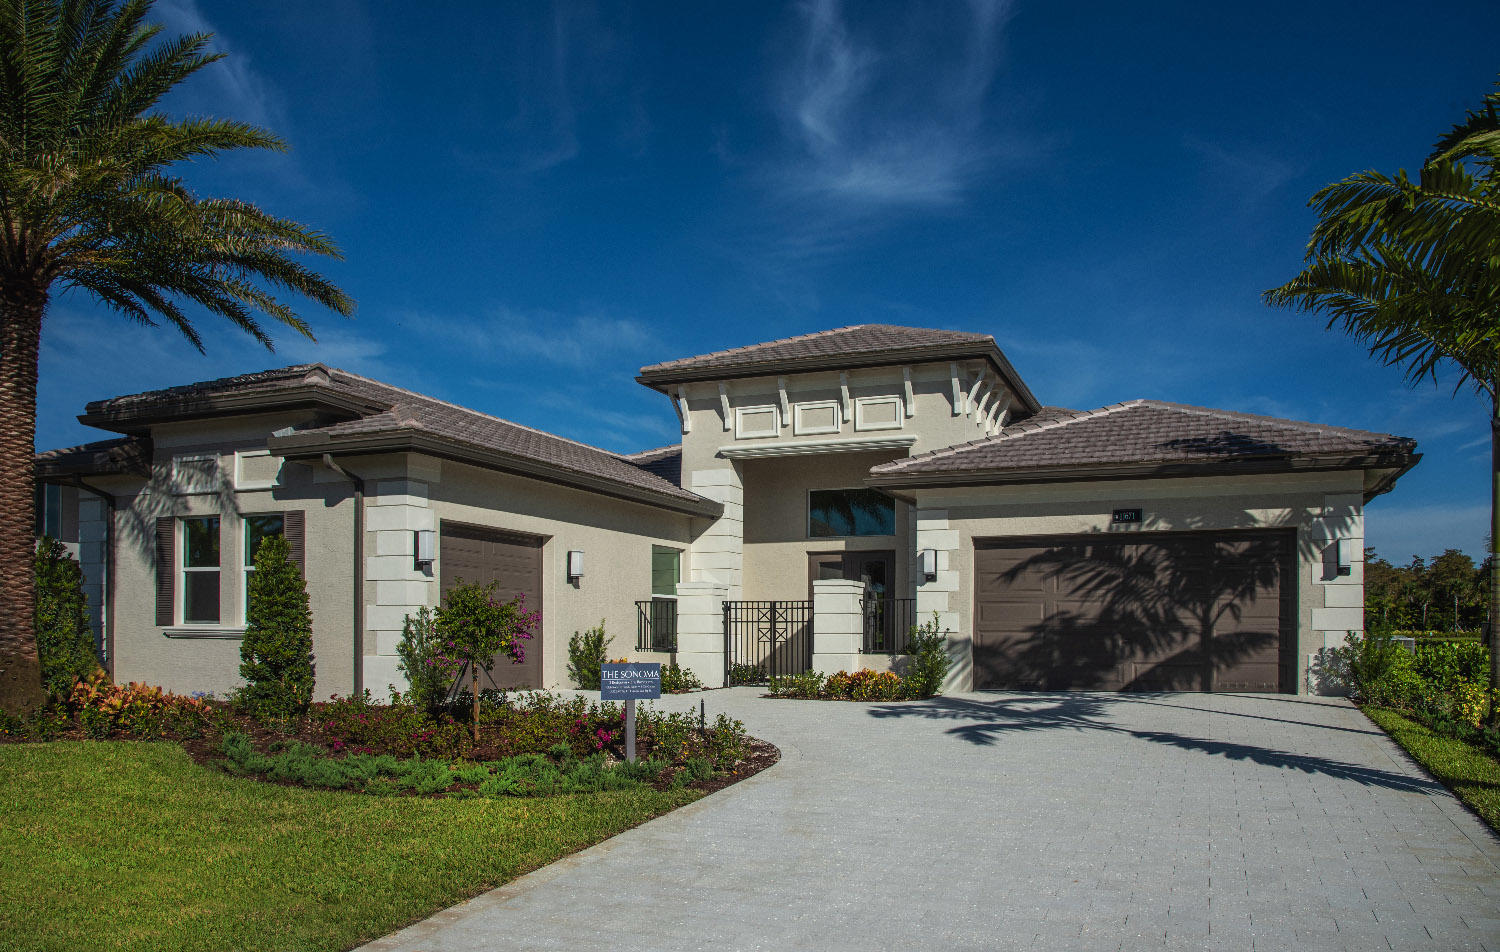 Home for sale in Berkeley Boca Raton Florida